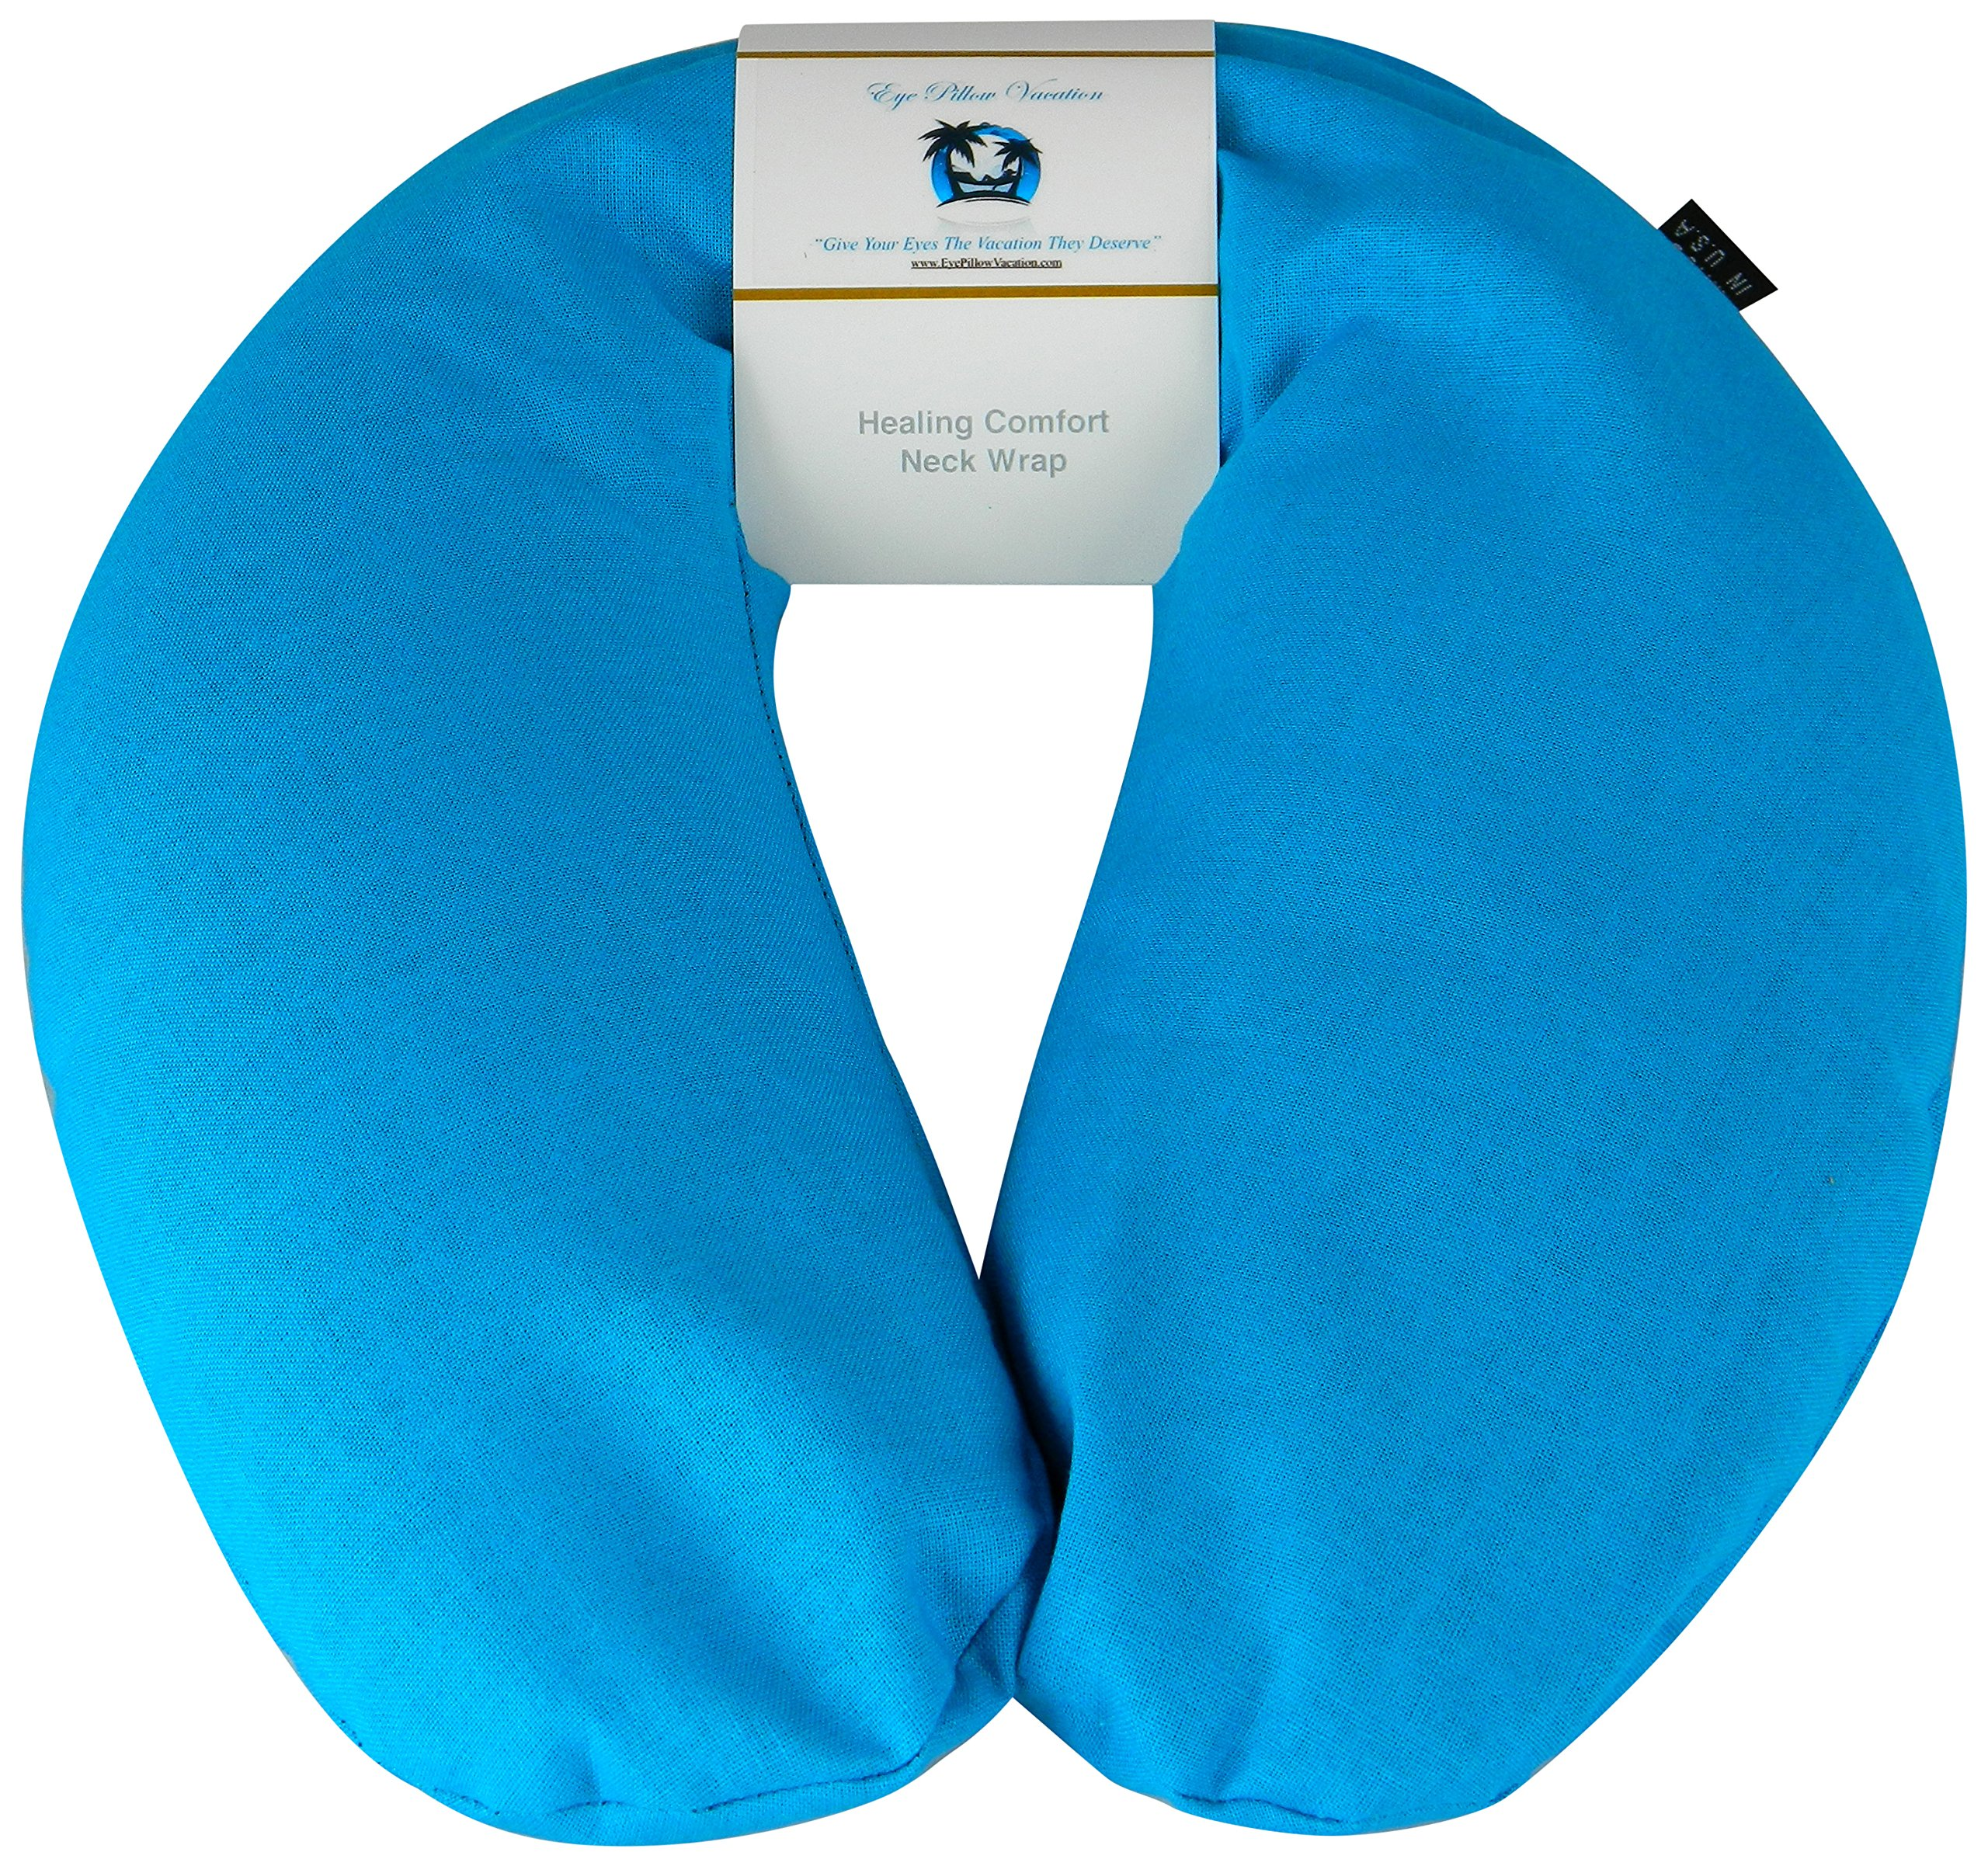 Neck Pain Relief Pillow - Hot/Cold Therapeutic Herbal Pillow For Shoulder & Neck Pain, Stress & Migraine Relief (Turquoise - Organic Cotton)